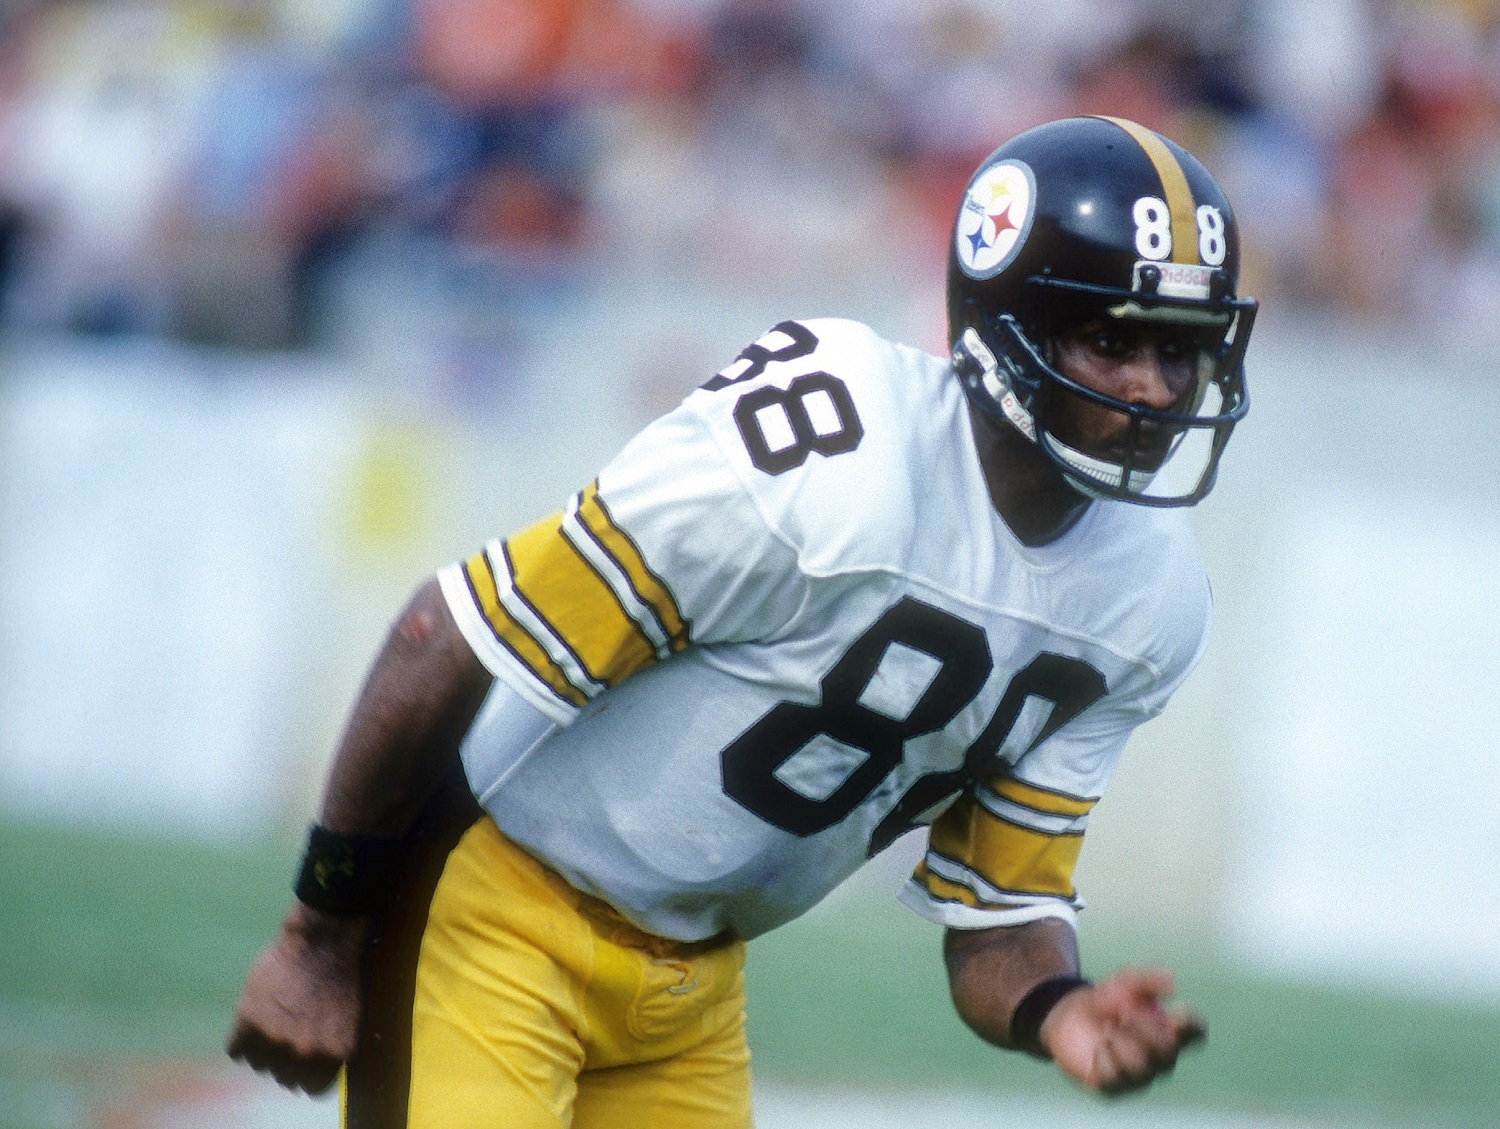 Lynn Swann helped the Pittsburgh Steelers to four Super Bowl victories en route to induction into the Pro Football Hall of Fame